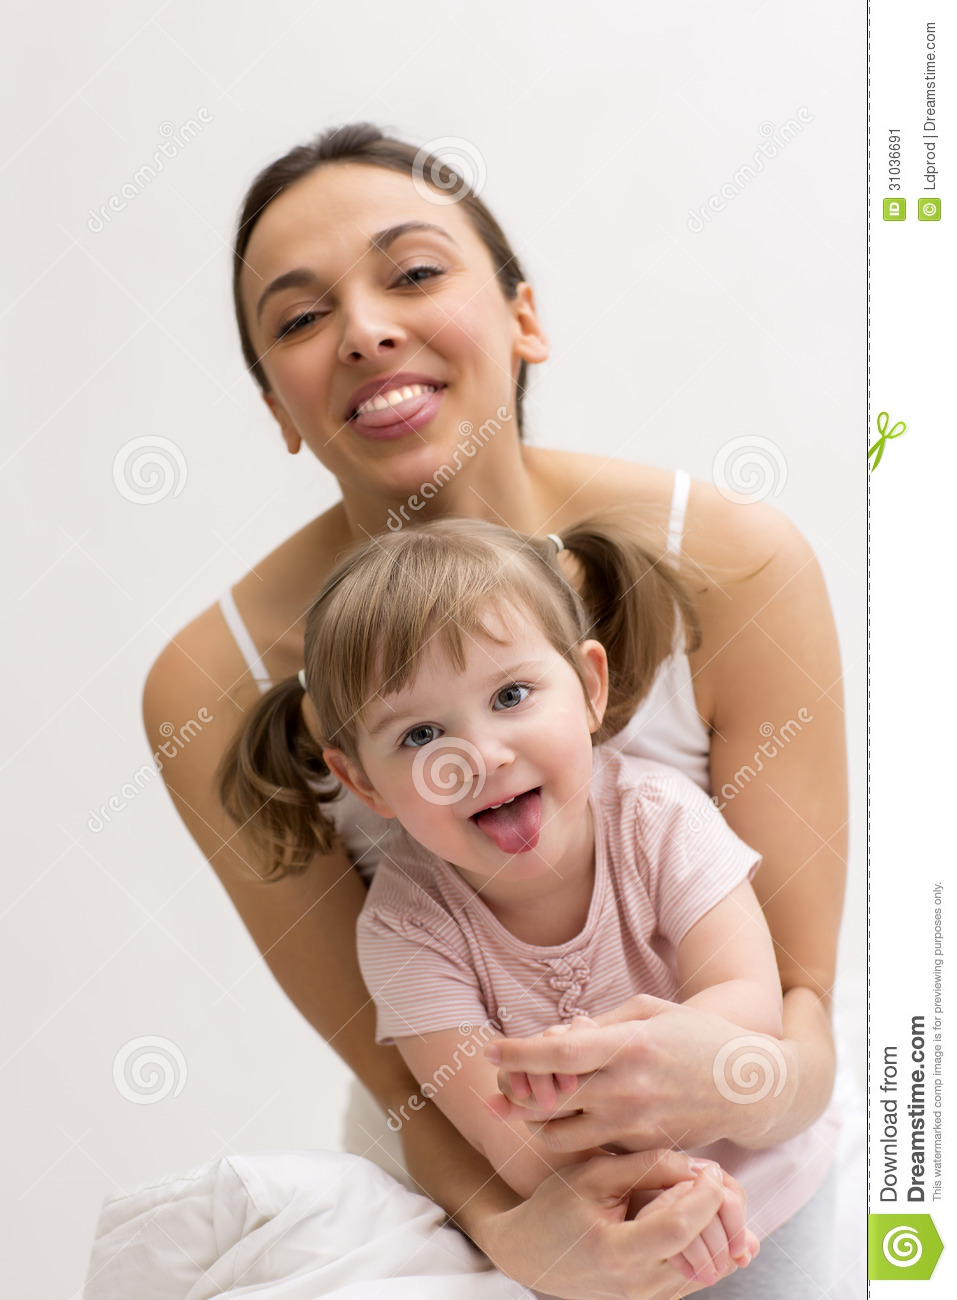 Mother and daughter having fun-3822